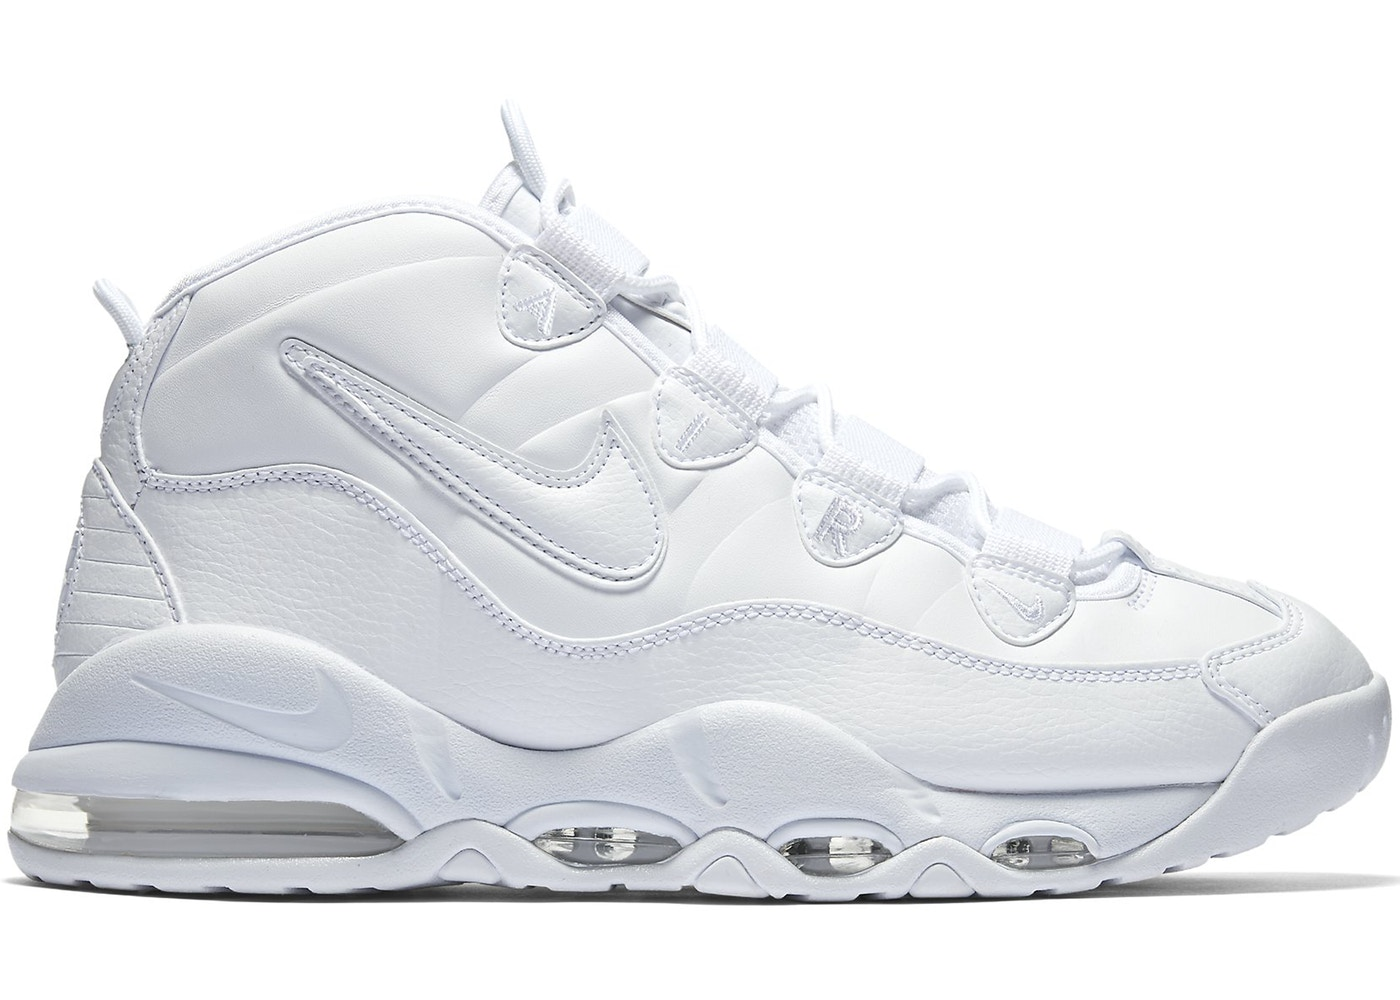 4990b0602c Air Max Uptempo 95 Triple White - 922935-100